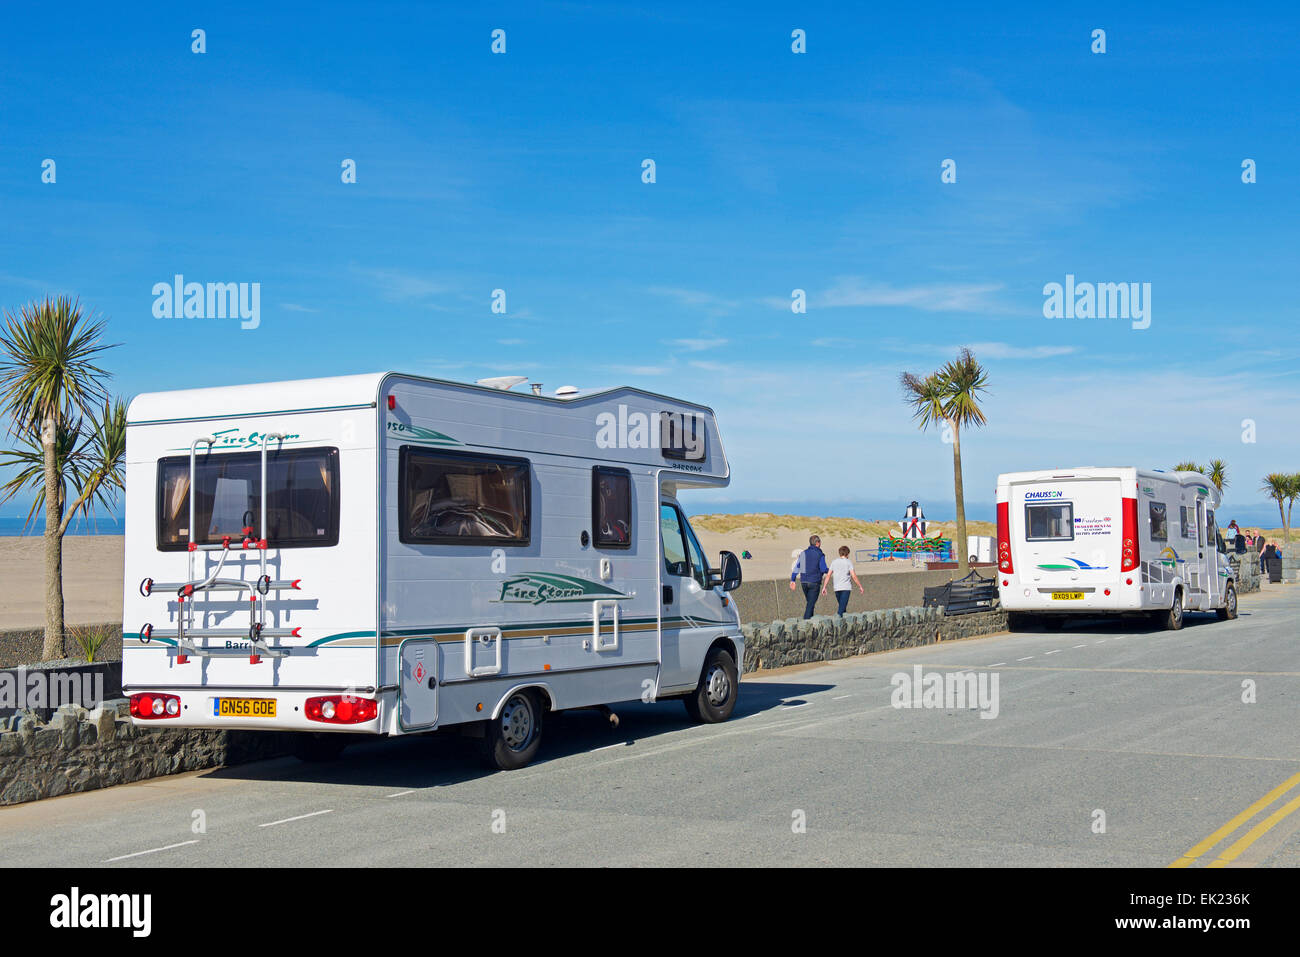 Motorhomes parked on the promenade, Barmouth, Gwynedd, North Wales UK - Stock Image